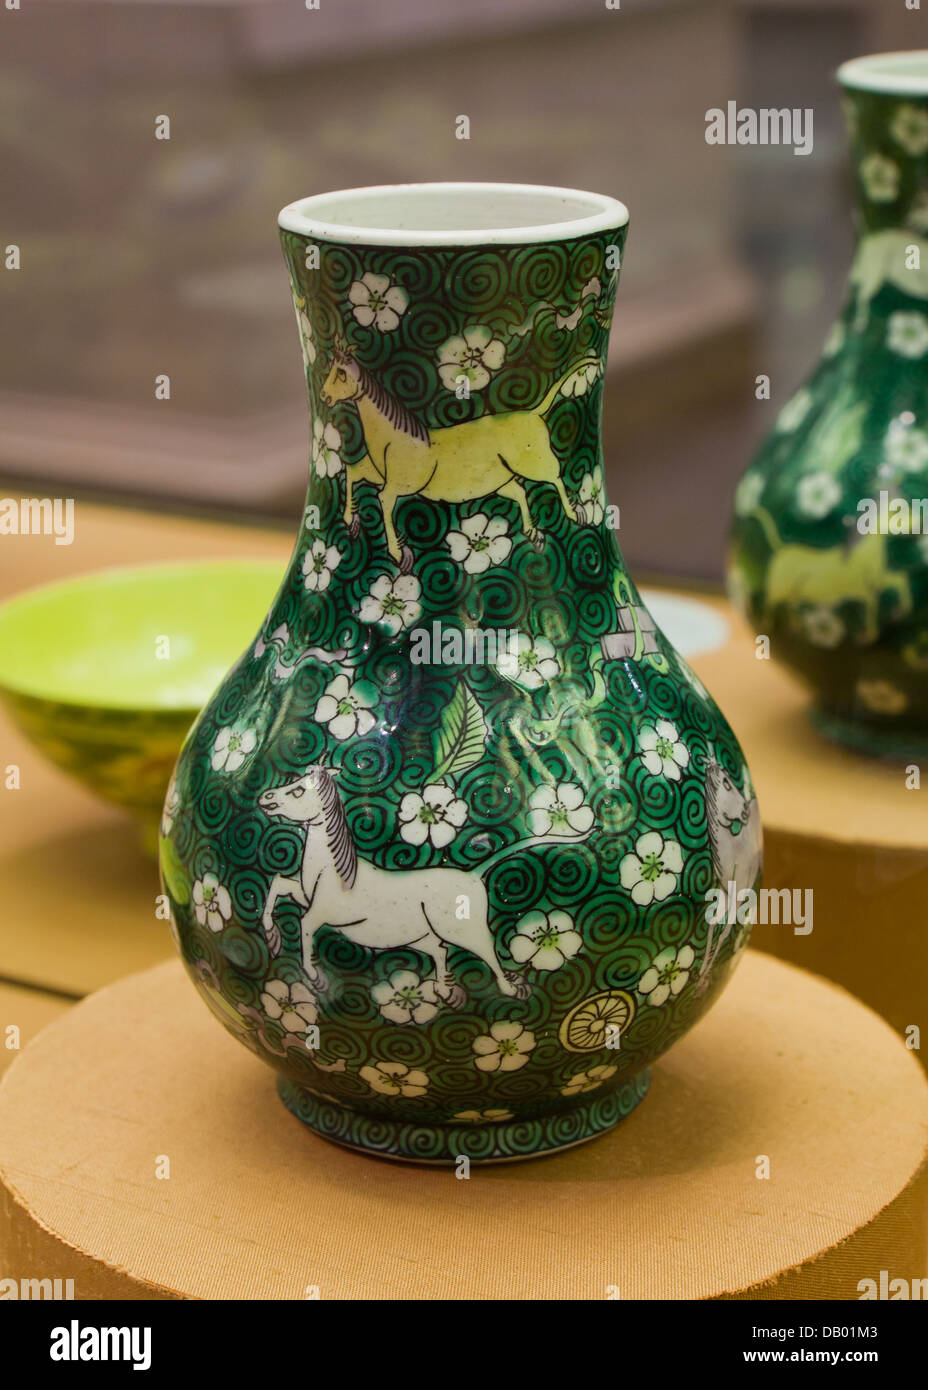 Antique Chinese famille verte enamels on biscuit porcelain vase - China, Shunzhi to early Kangxi reigns, 1644 - Stock Image